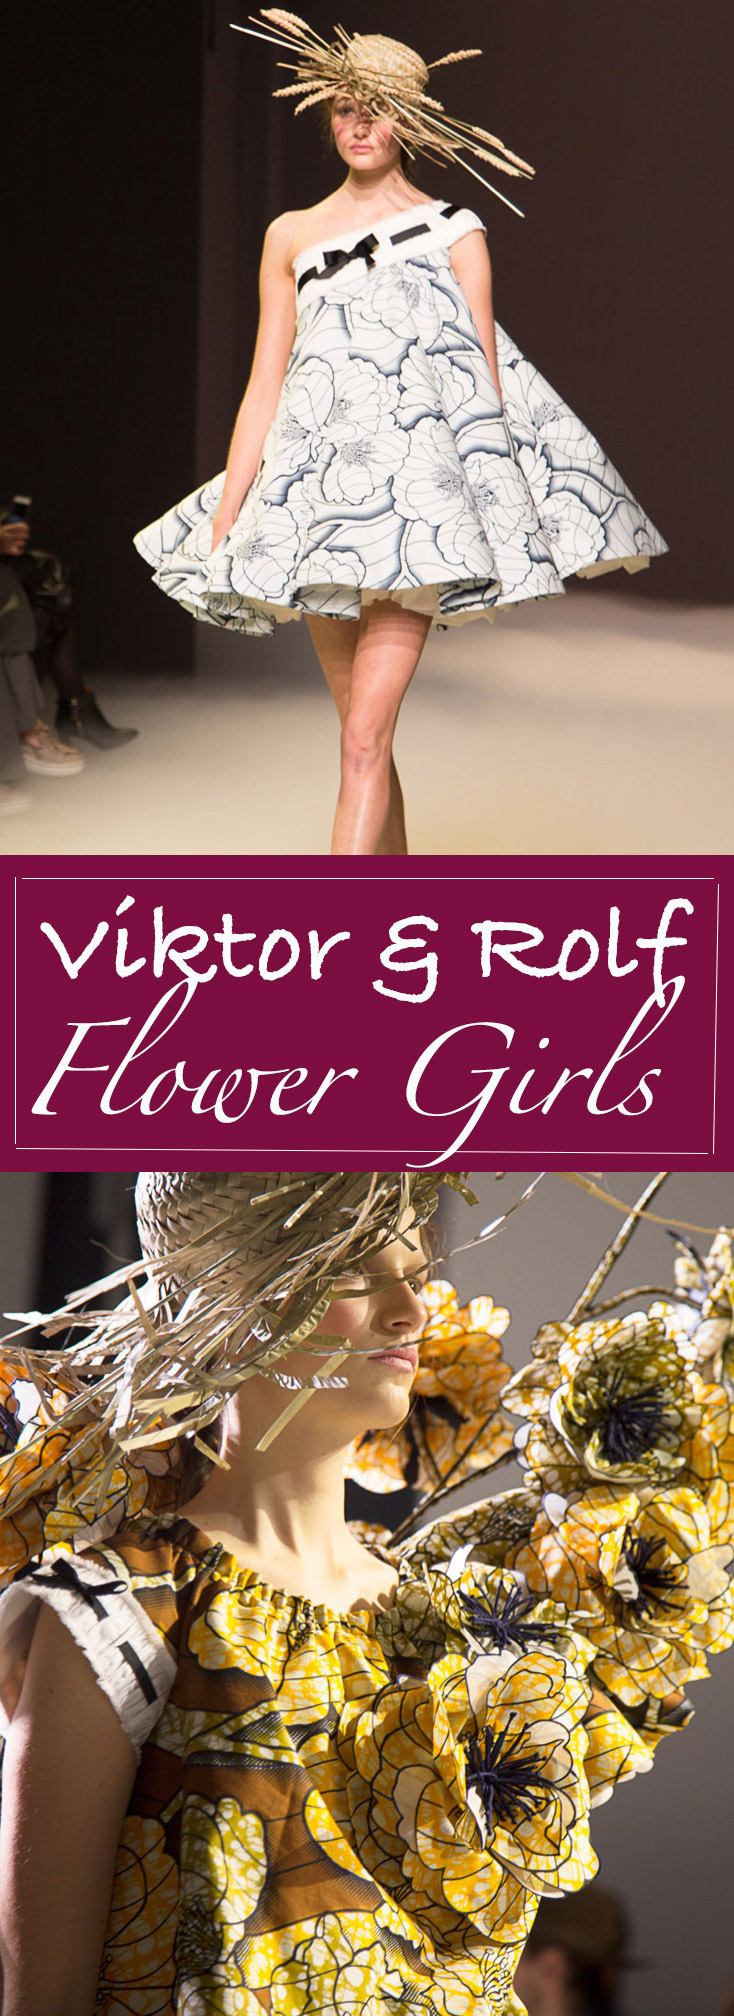 Viktor & Rolf Van gogh flower girls